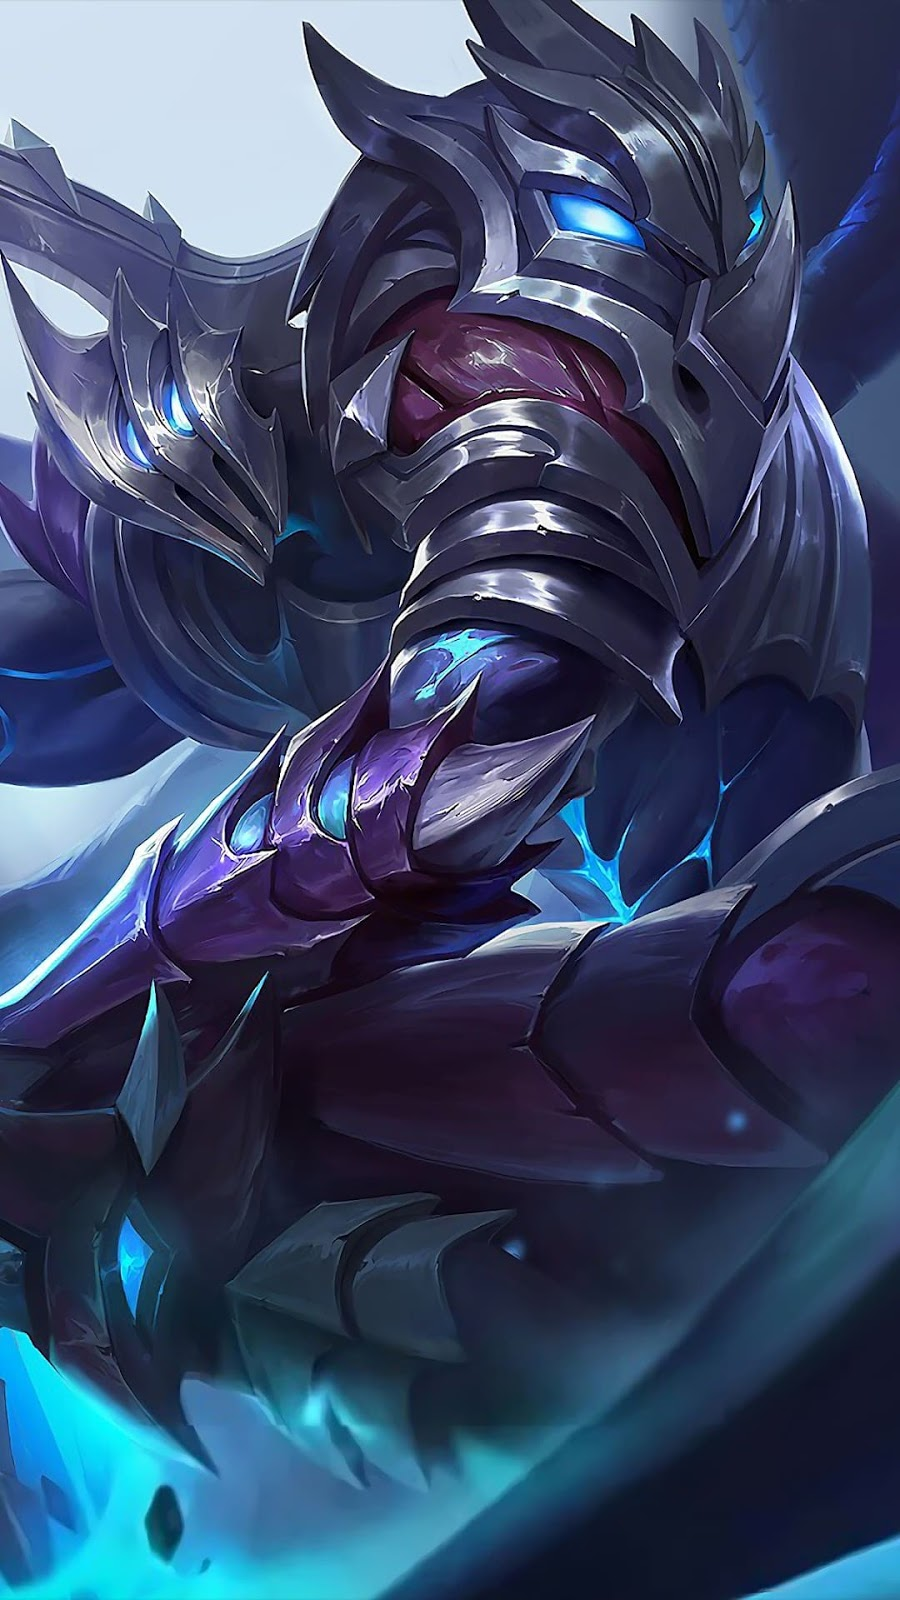 Wallpaper Argus Dark Draconic Skin Mobile Legends HD for Android and iOS